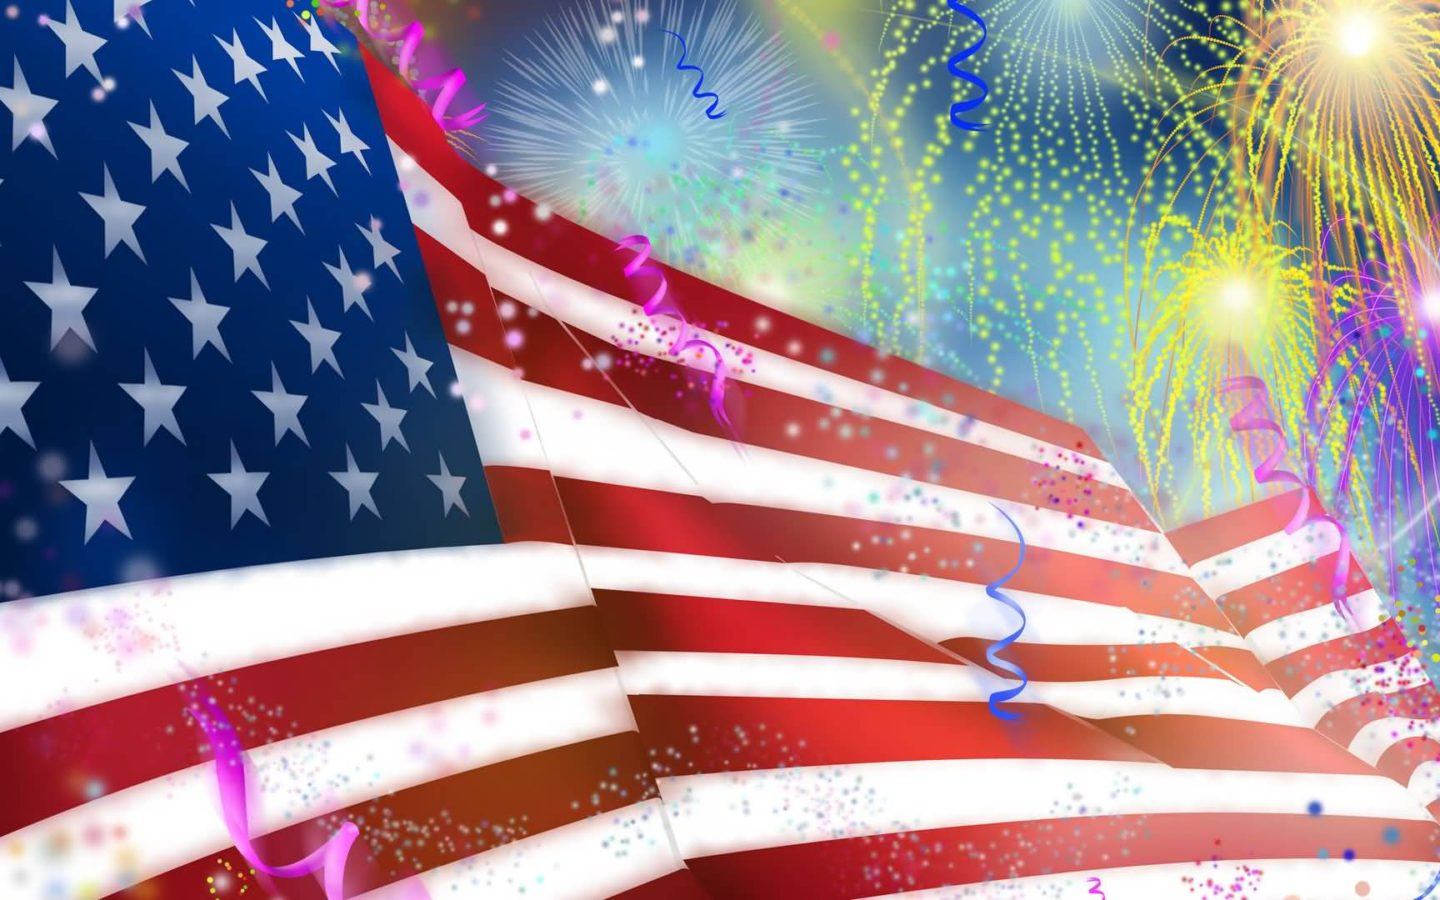 american flag and fireworks images